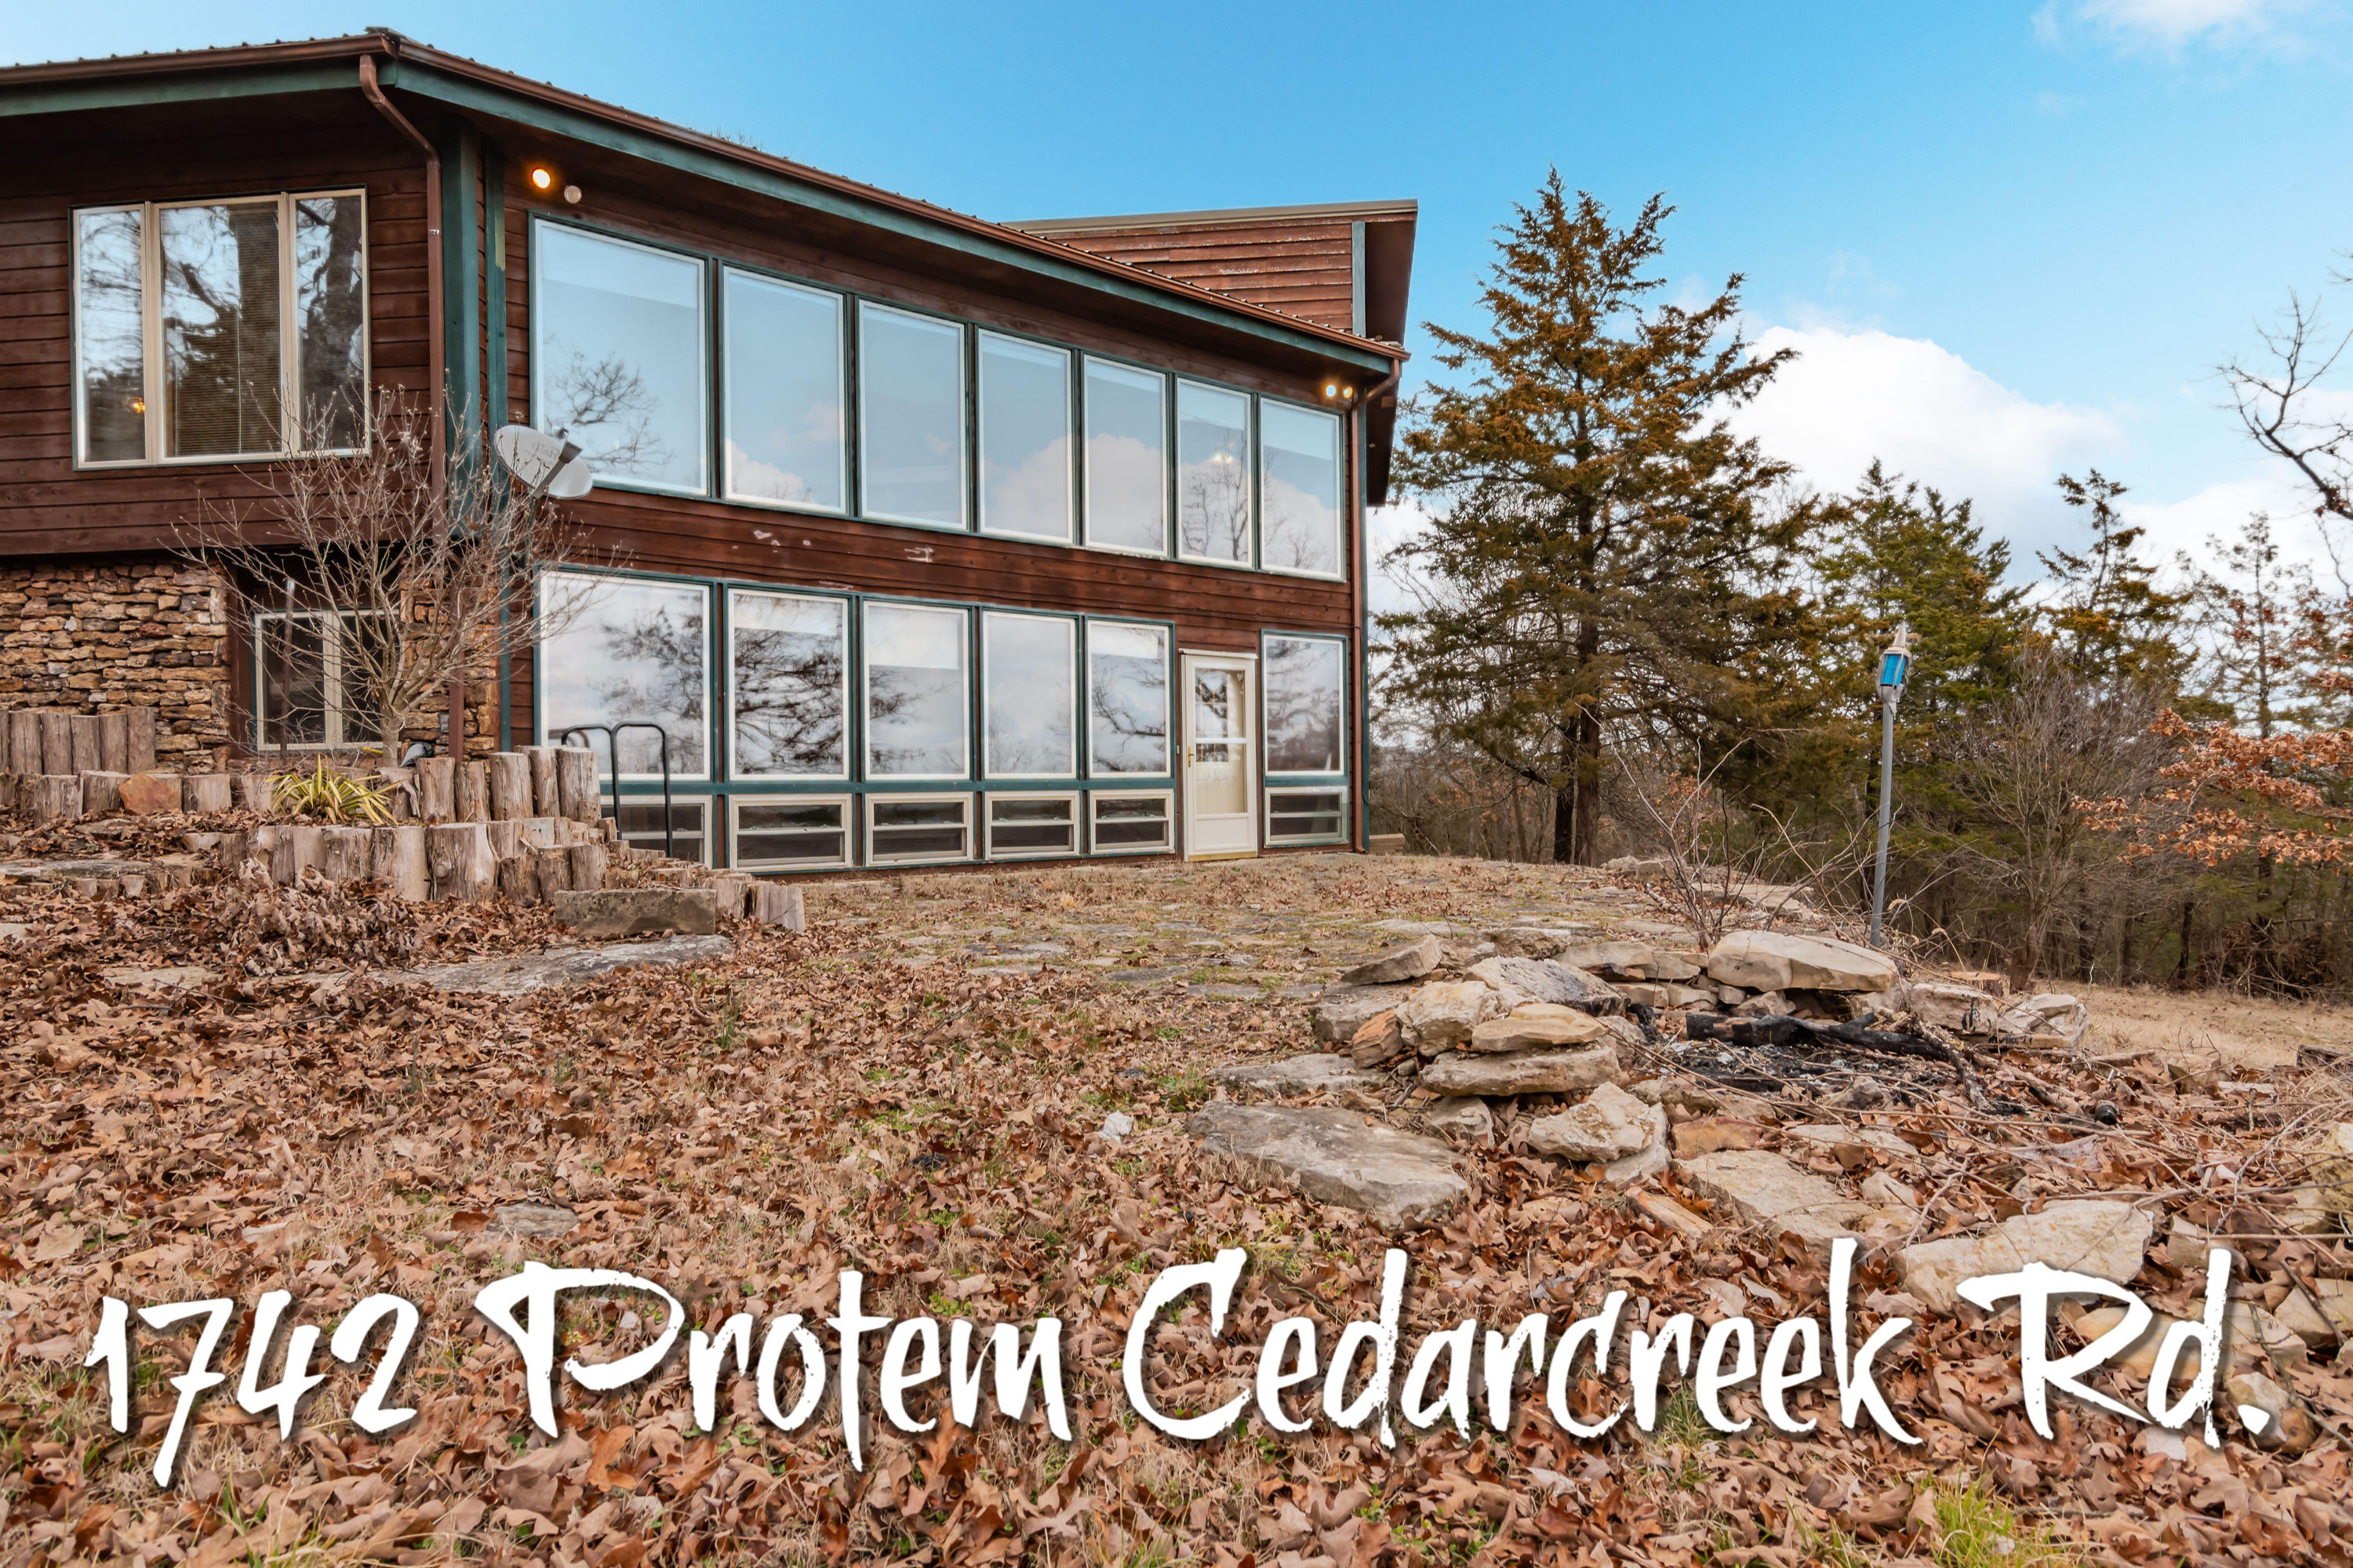 1742 Protem Cedar Creek Road Cedar Creek, MO 65627